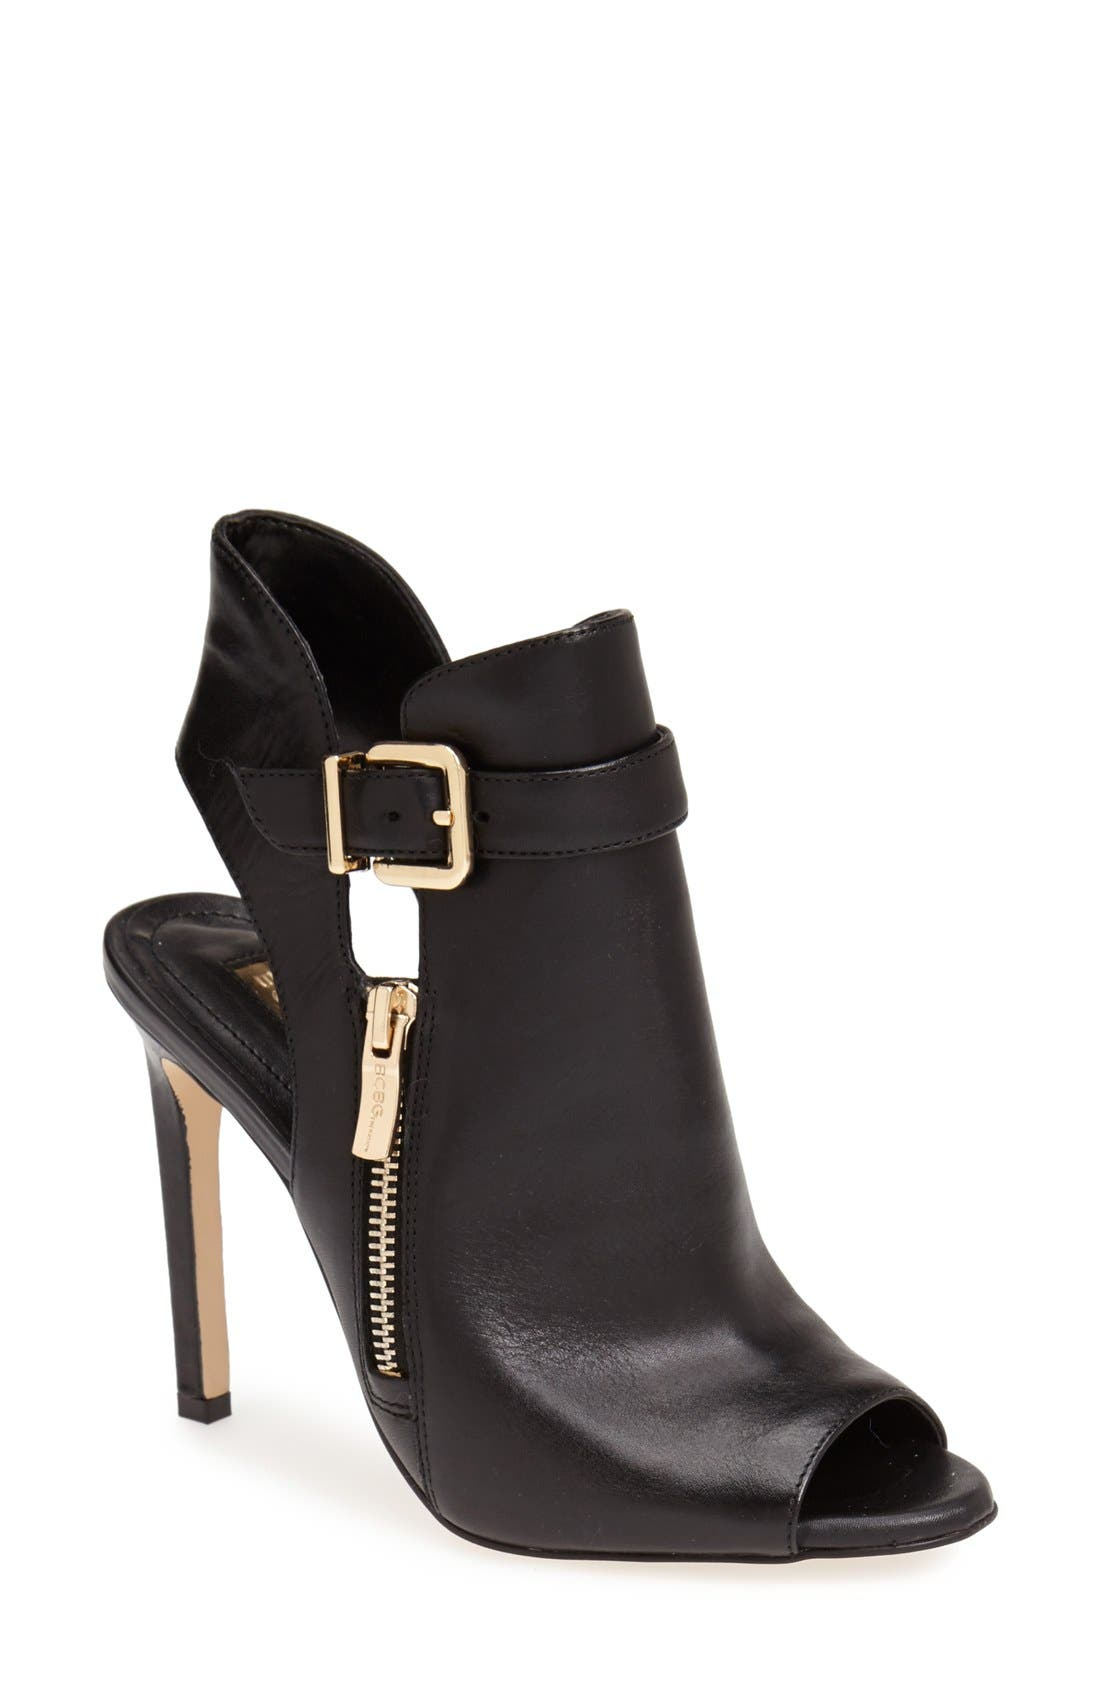 Alternate Image 1 Selected - BCBGeneration 'Chandler' Peep Toe Leather Bootie (Women)